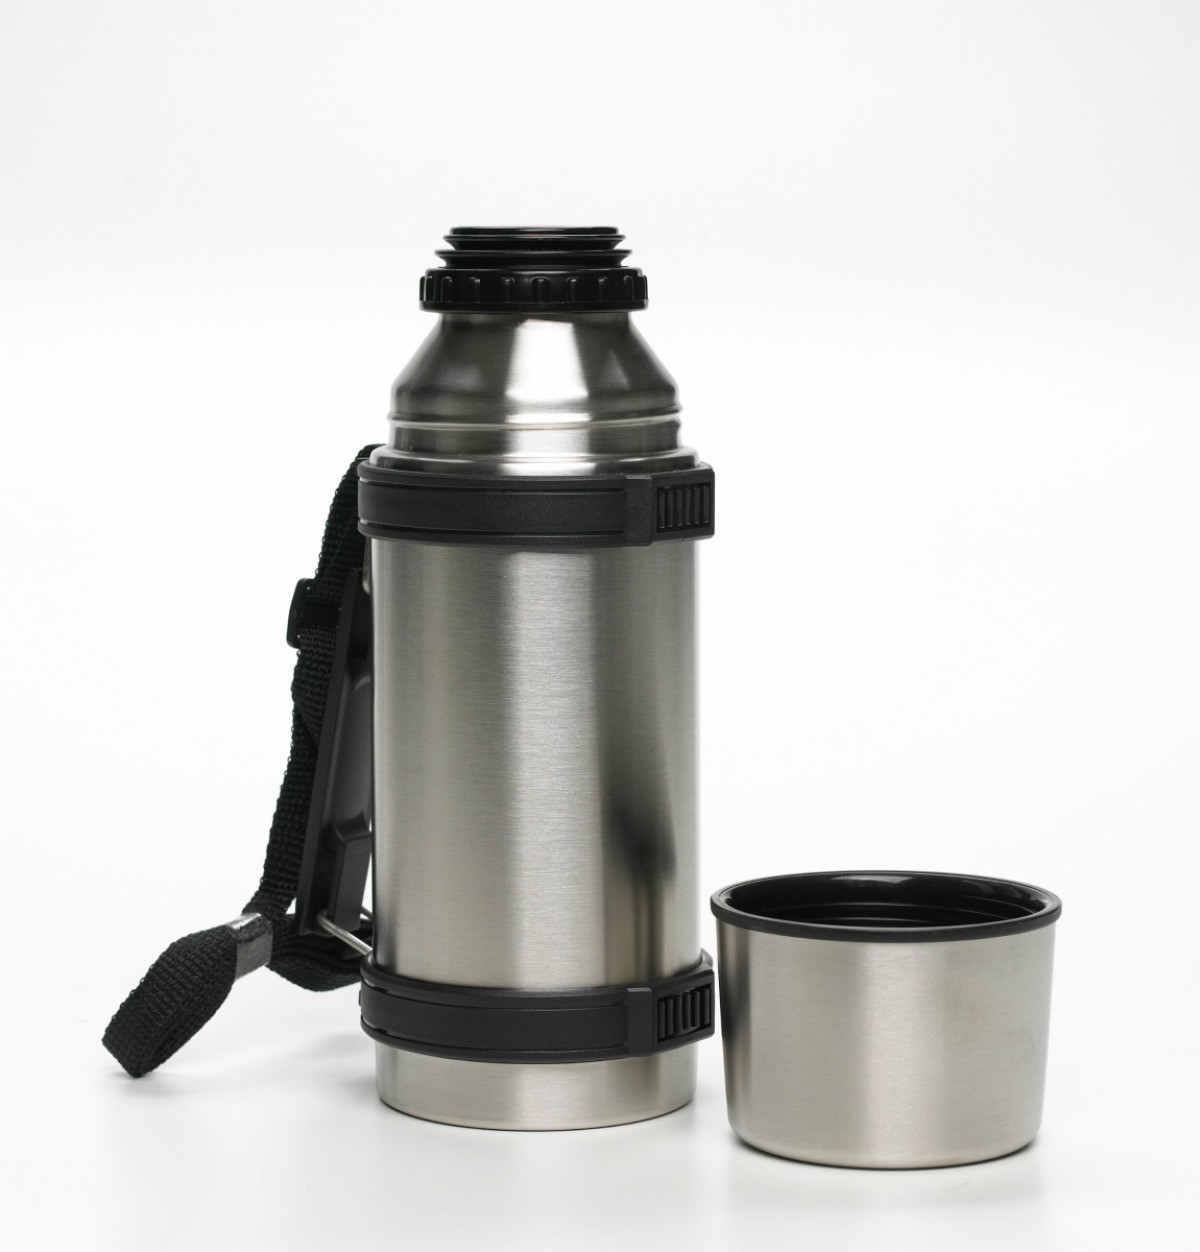 Replacement Parts for a Gott Thermos | ThriftyFun